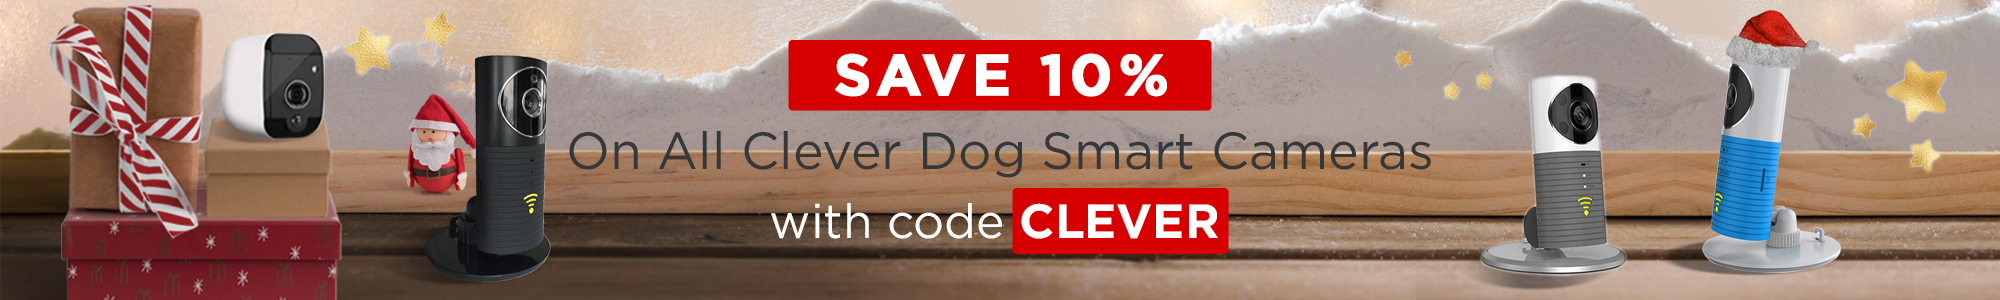 Save 10% on all Clever Dog cameras with code CLEVER